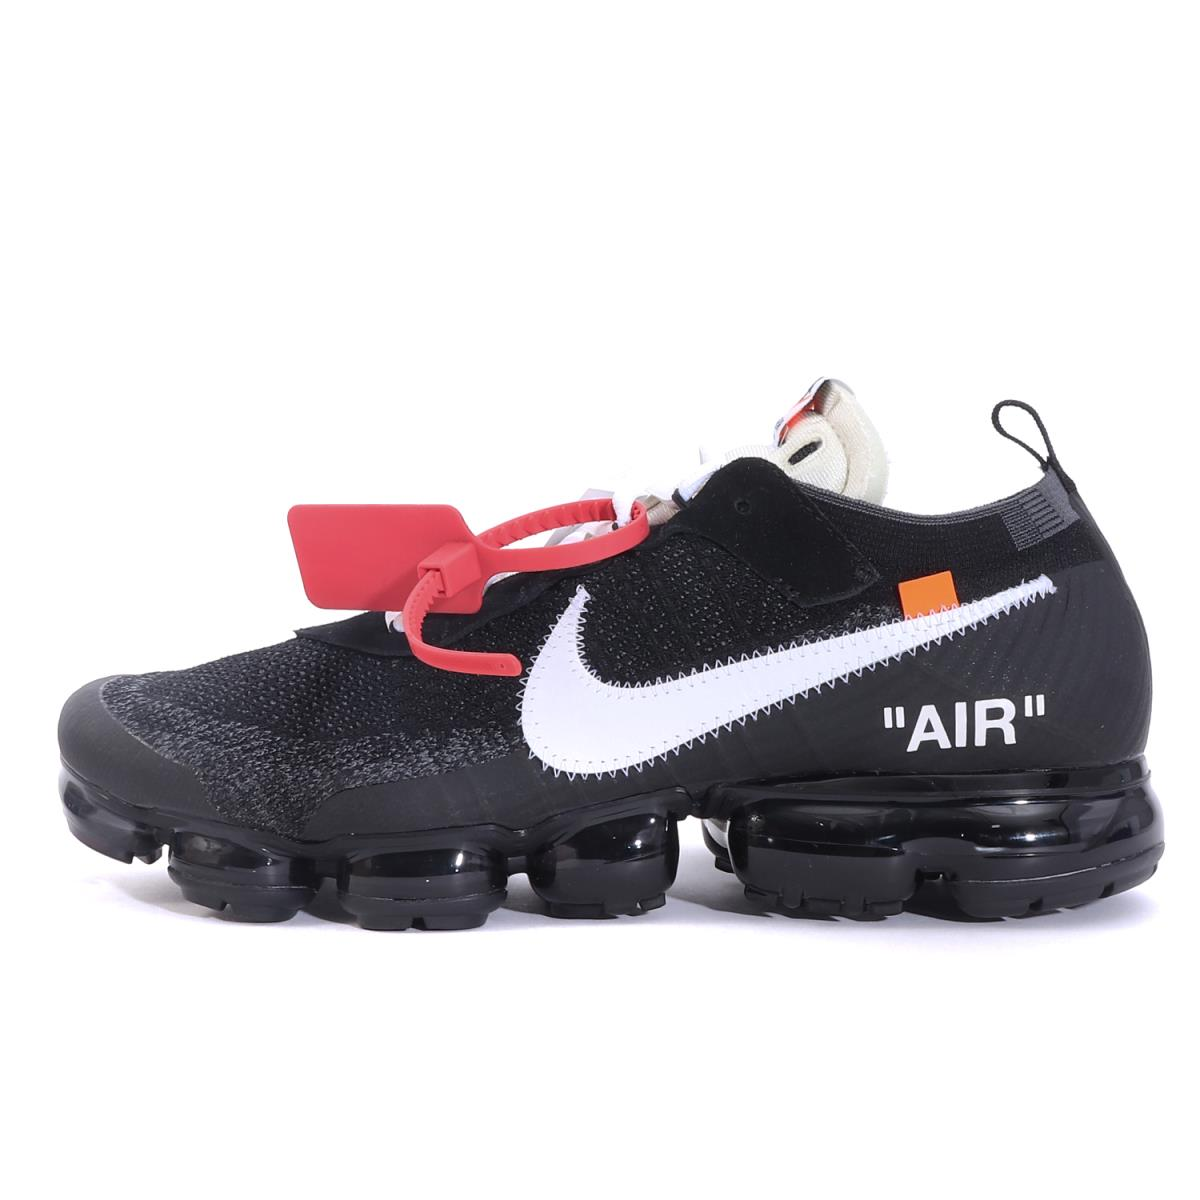 53f05837ffe It is AIR VAPORMAX FK (AA3831-001) black US12(30cm) OFF-WHITE (off-white)  17AW X NIKE THE 10